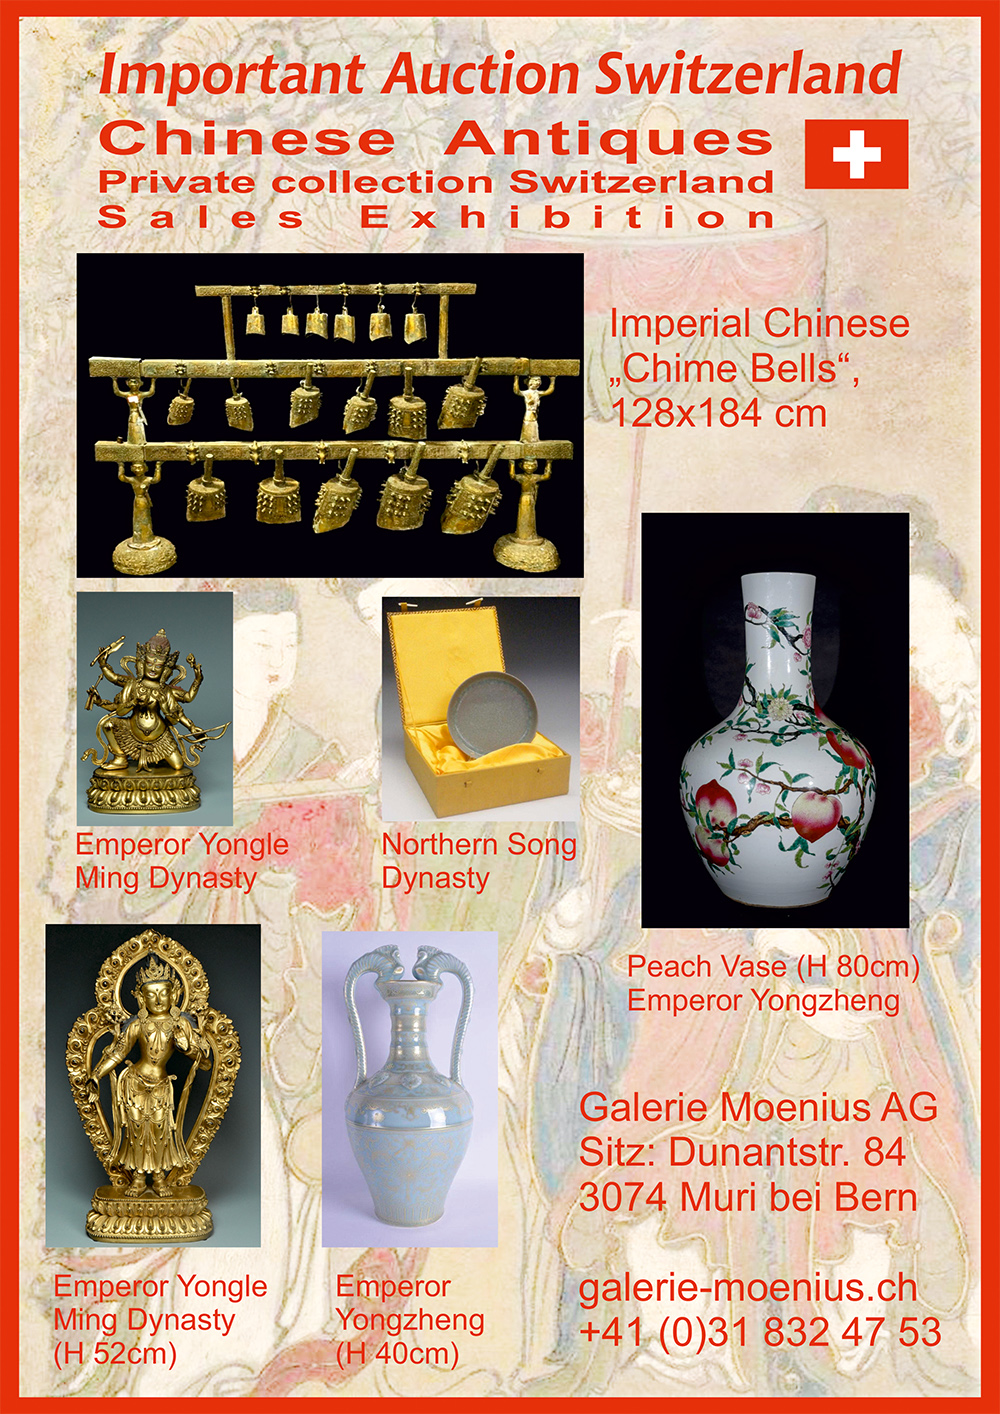 A4_Flyer Swiss Auction Hongkong20102018.cdr